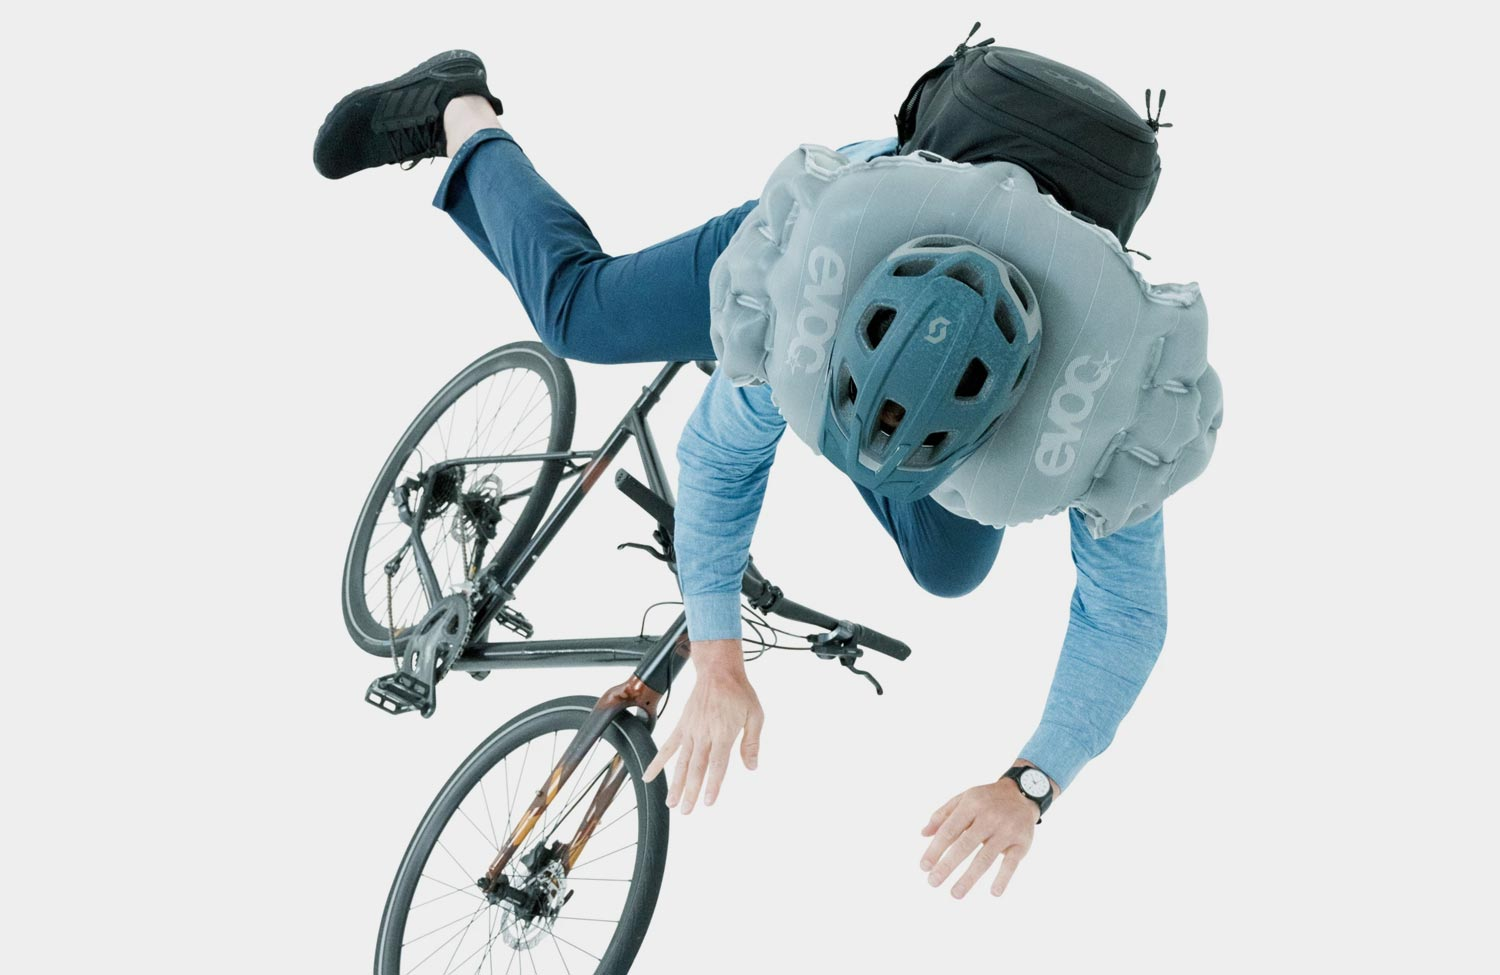 Evoc Commute A.I.R. Pro 18: An airbag backpack for cycling in the city